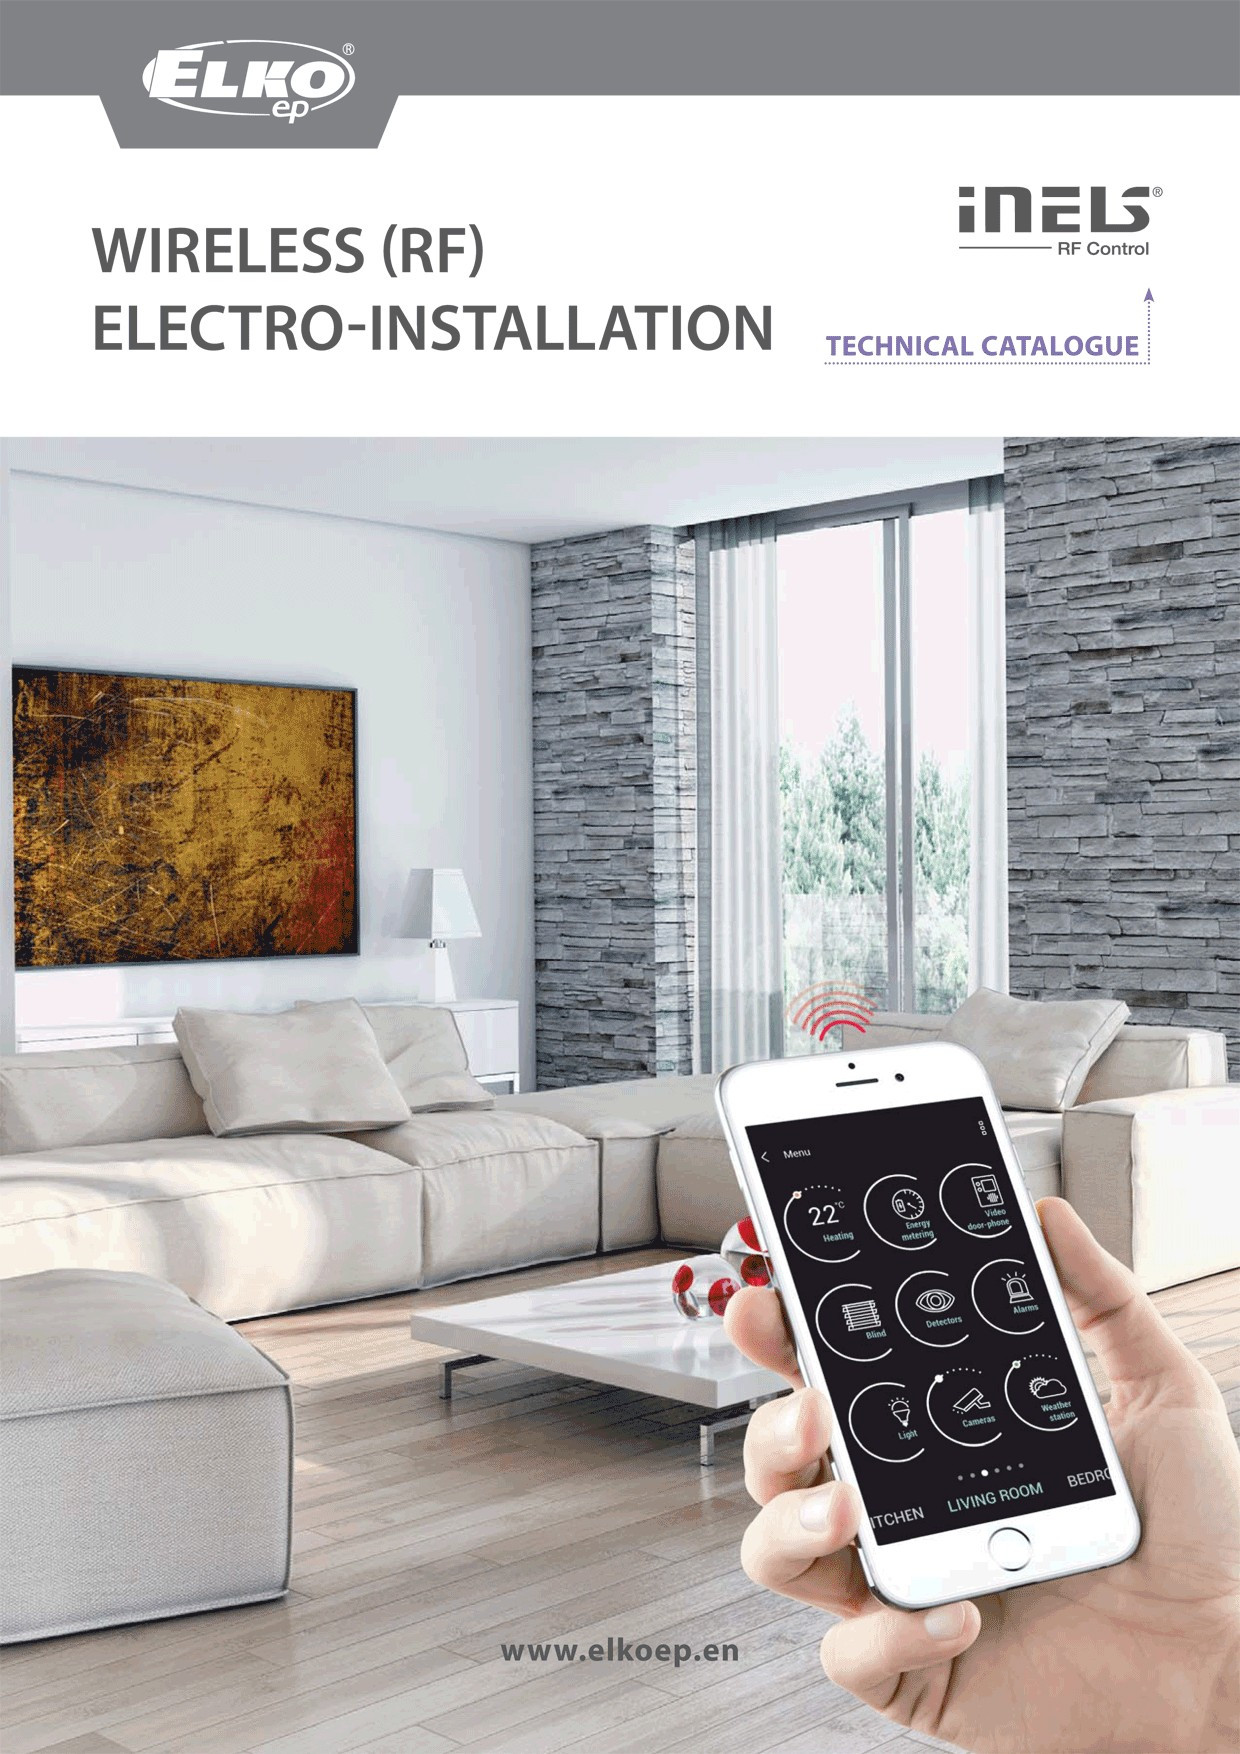 RF wireless electroinstallation preview